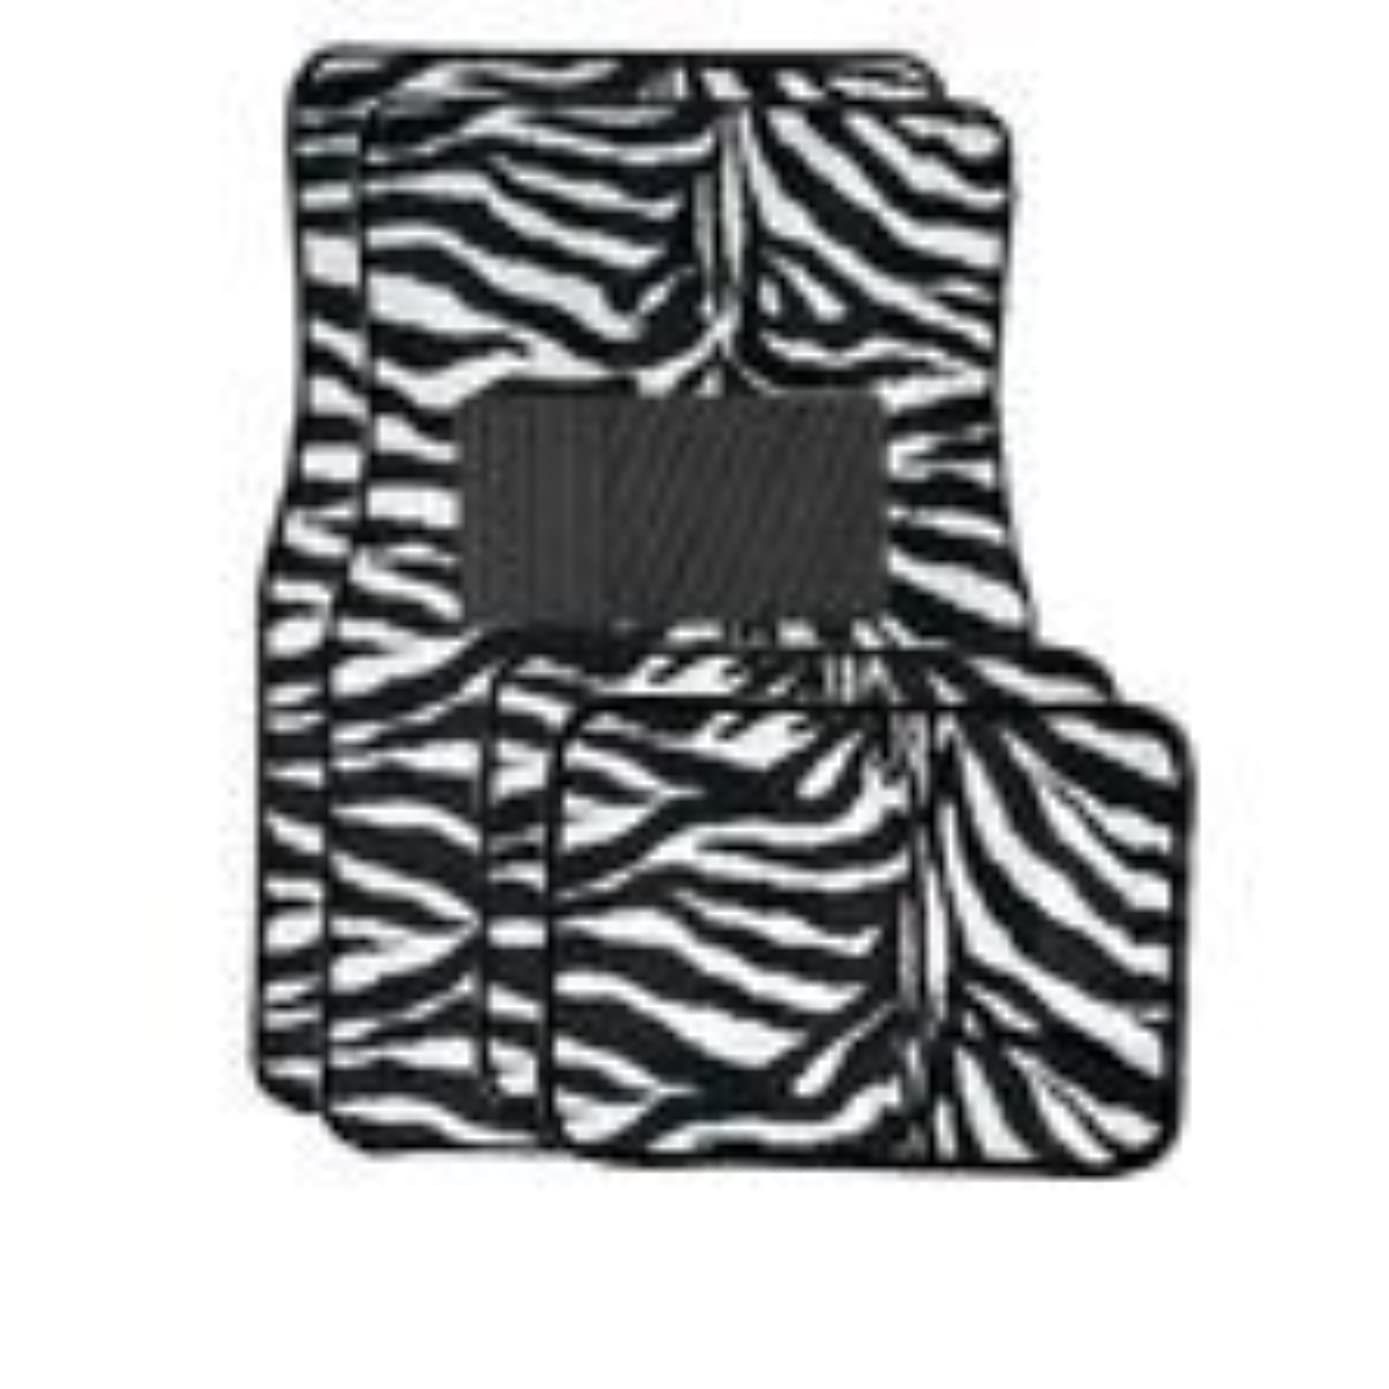 A Set of 4 Universal Fit Animal Print Carpet Floor Mats for Cars / Truck - Zebra White Tiger by BDK